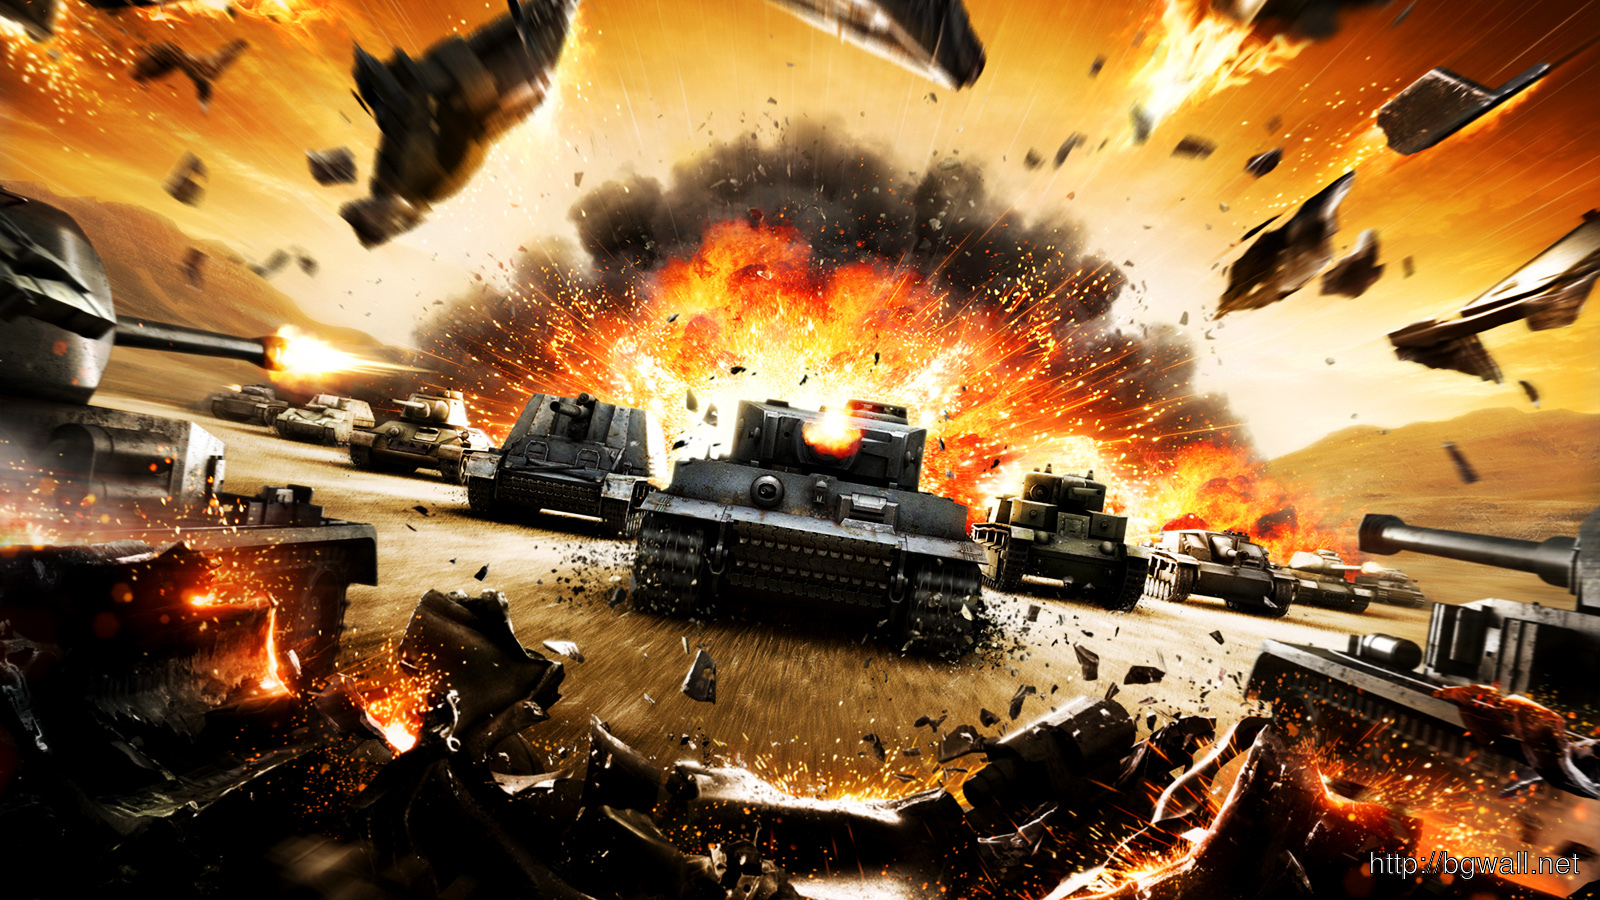 World Of Tanks Destroyed And Explosion Hd Wallpapers 1600x900 Pixel Full Size